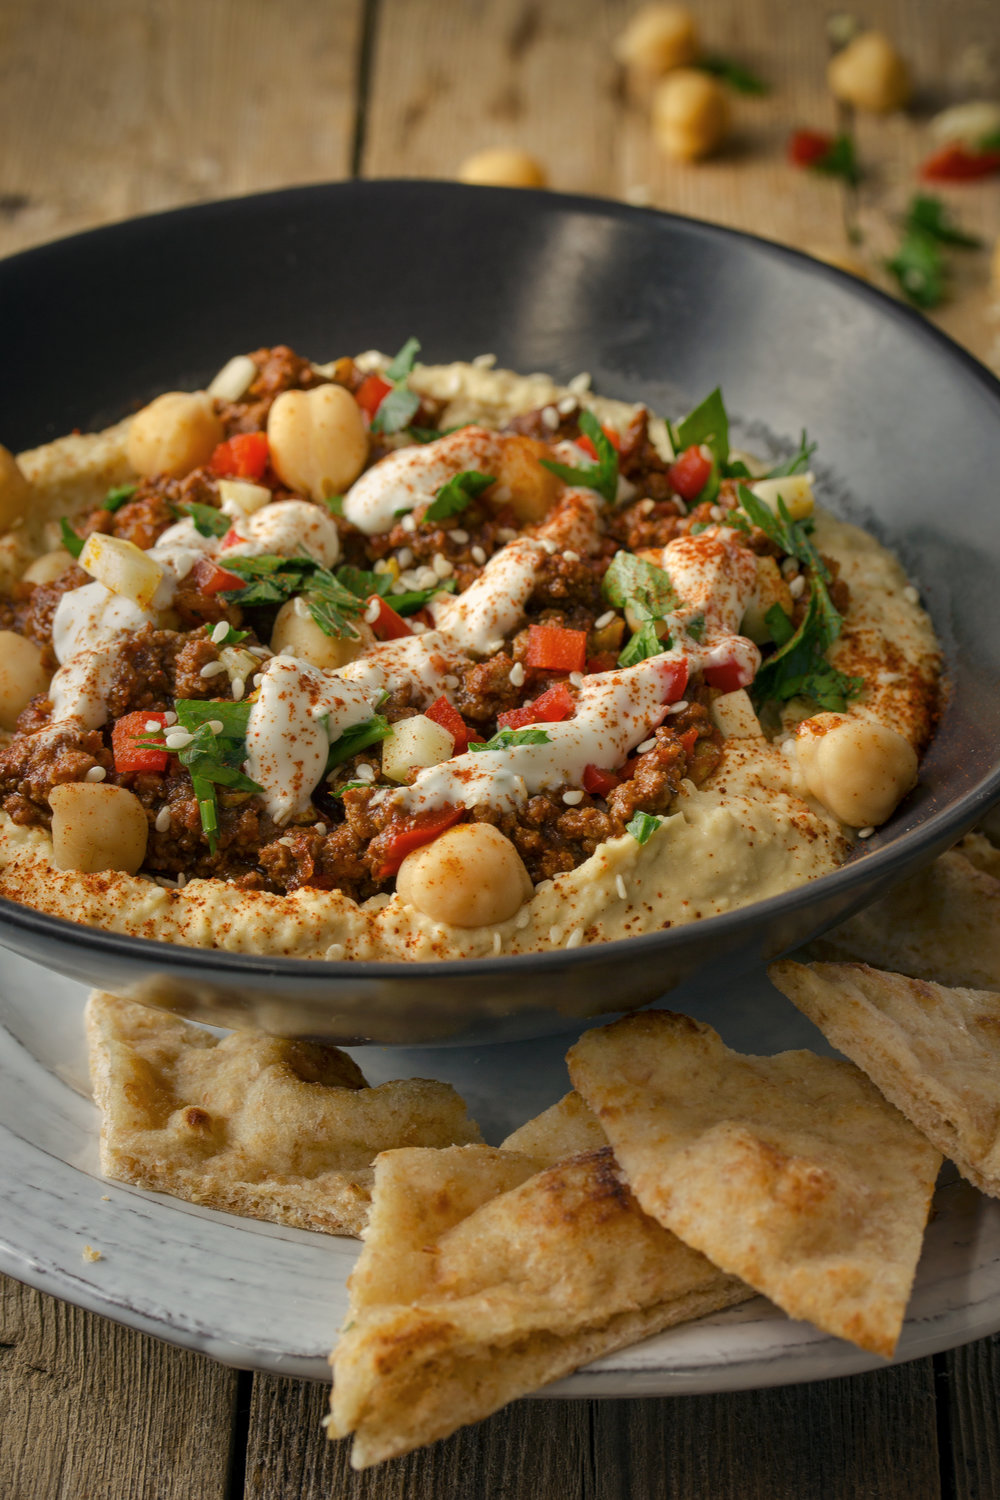 Hamshouka-Style Spiced Ground Meat Hummus